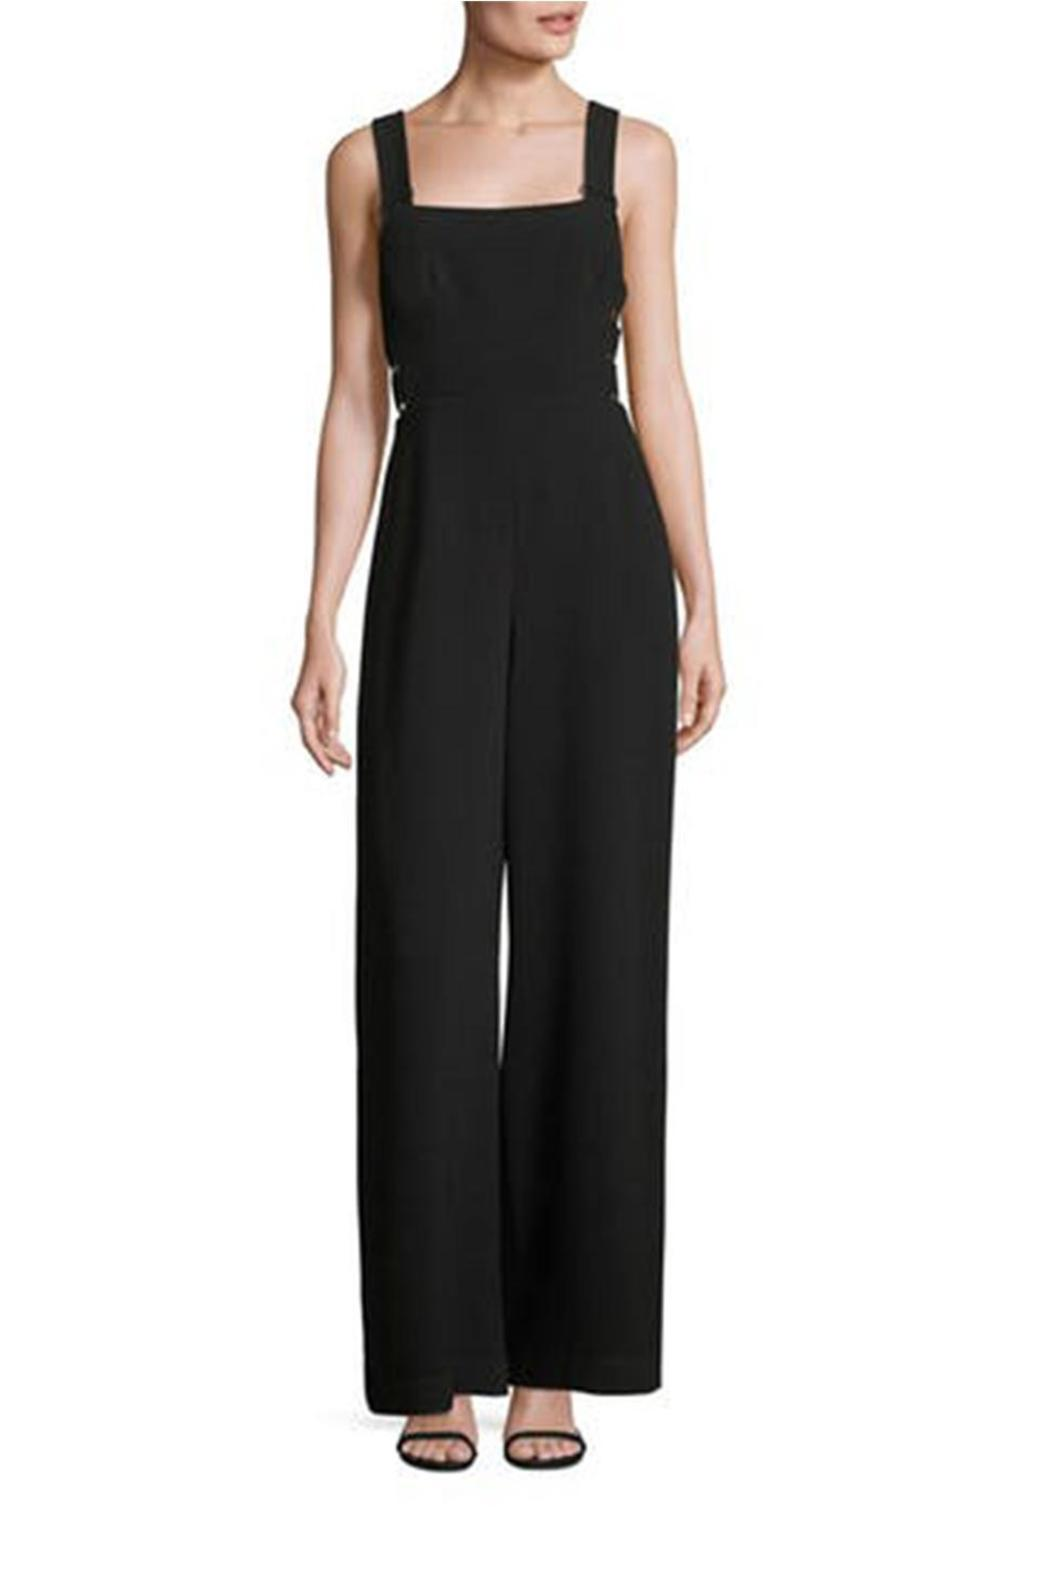 d8af9facde0 Zimmermann Buckle Jumpsuit from Los Angeles by Tags Boutique ...